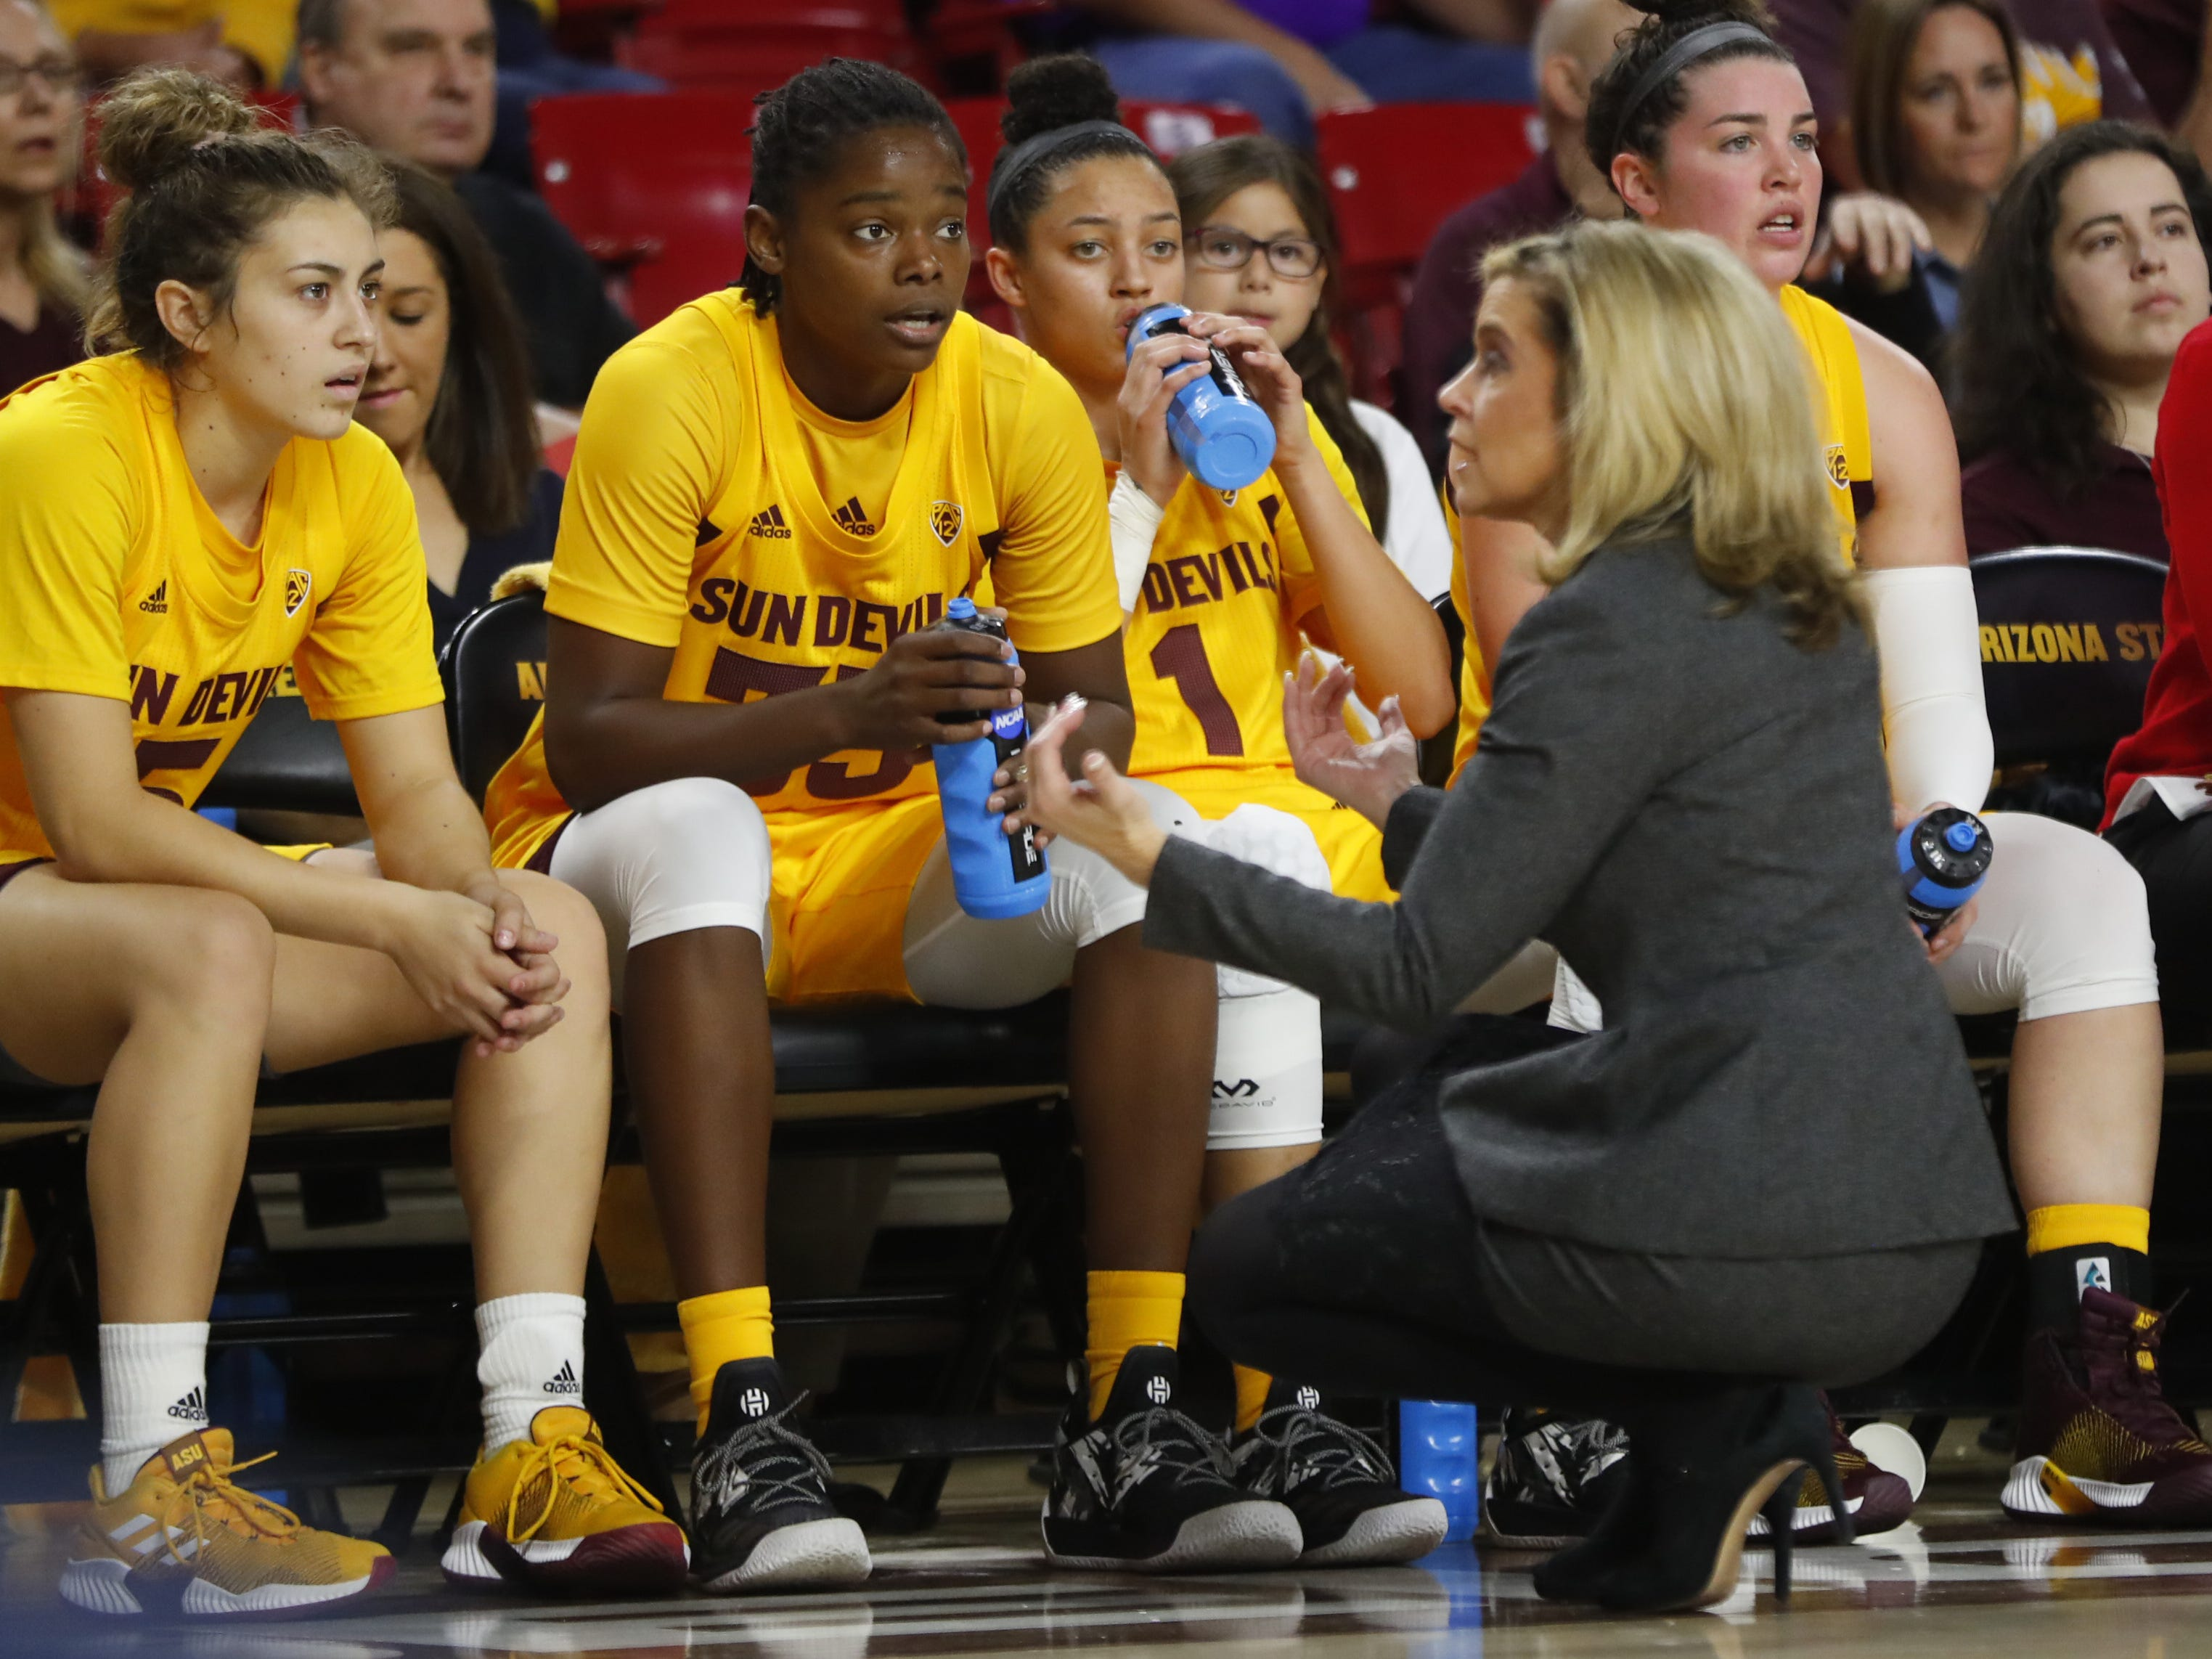 ASU's head coach Charli Turner Thorne talks to her team on the bench during the second half against LA Tech at Wells Fargo Arena in Tempe, Ariz. on November 30, 2018.